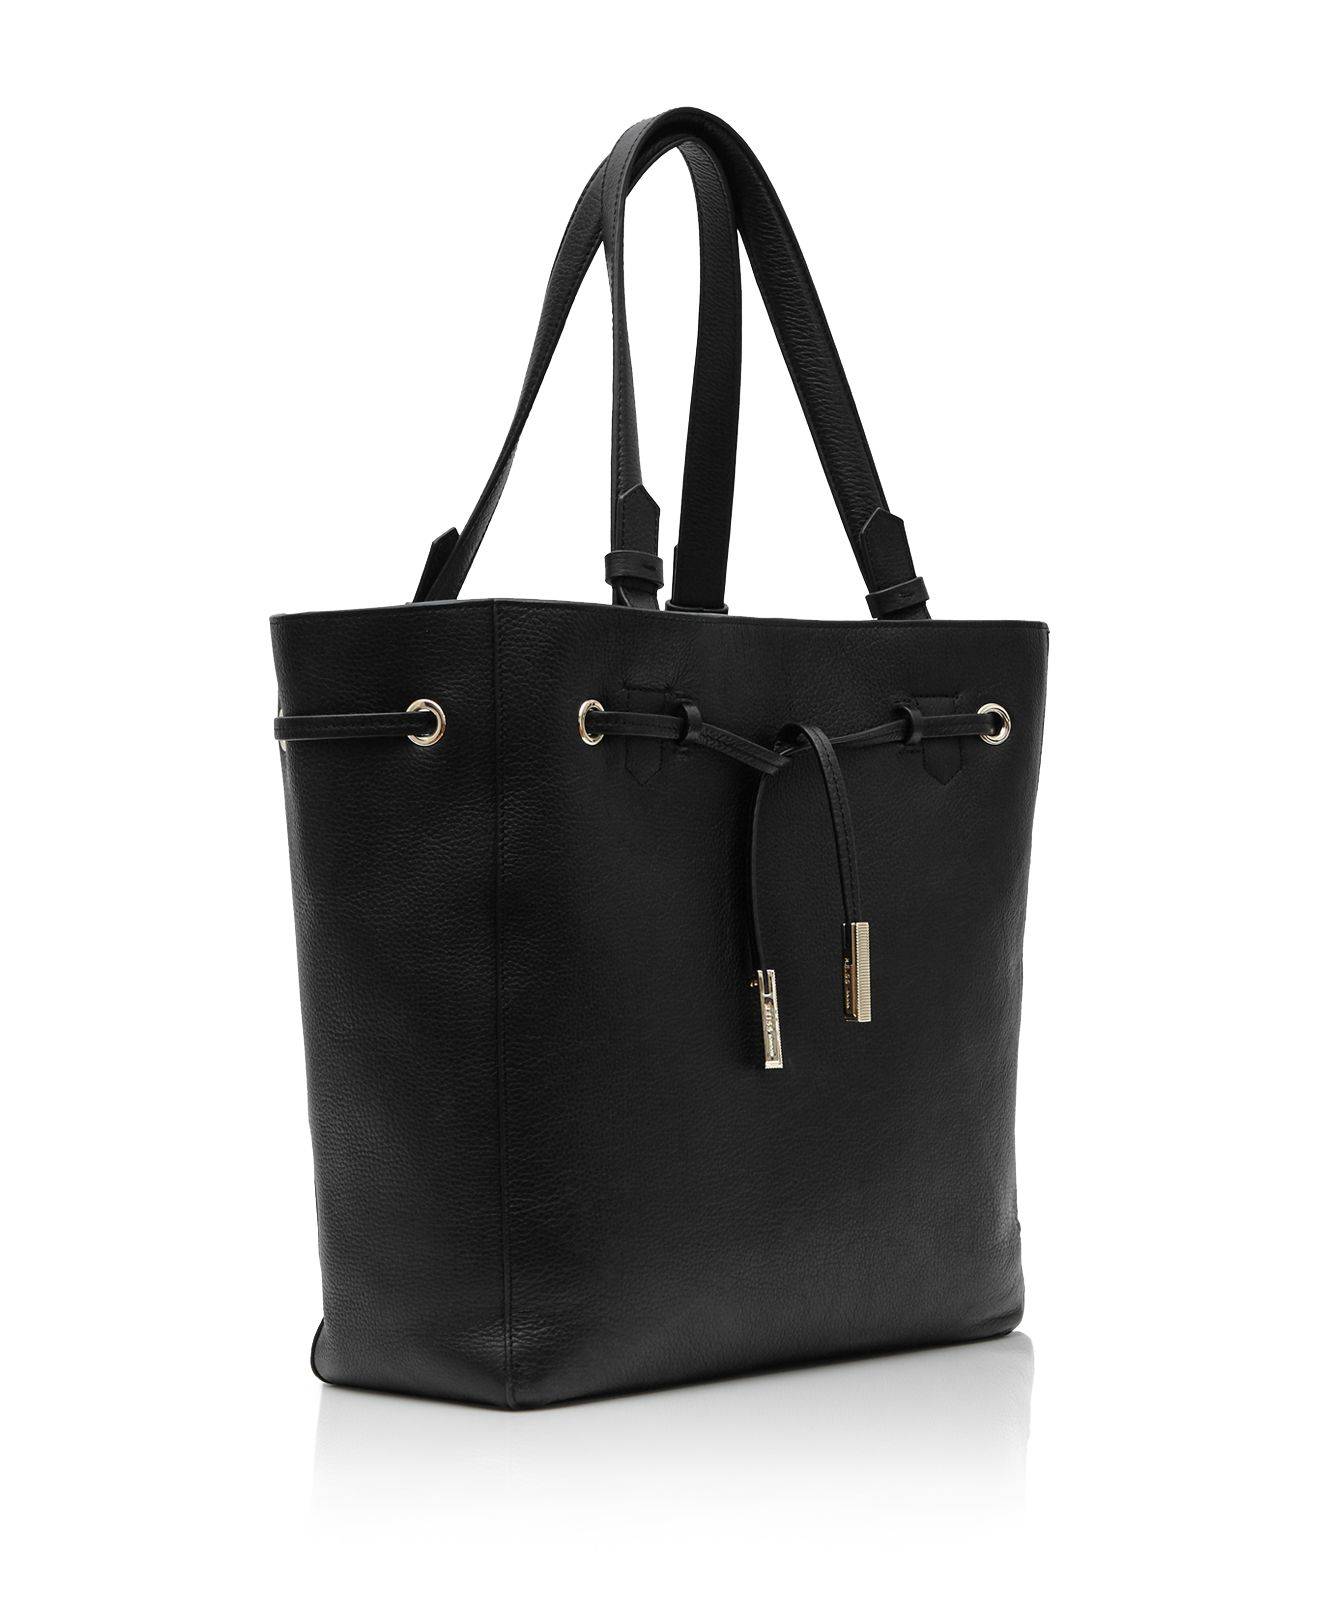 Reiss Synthetic Large Enza Tote in Black